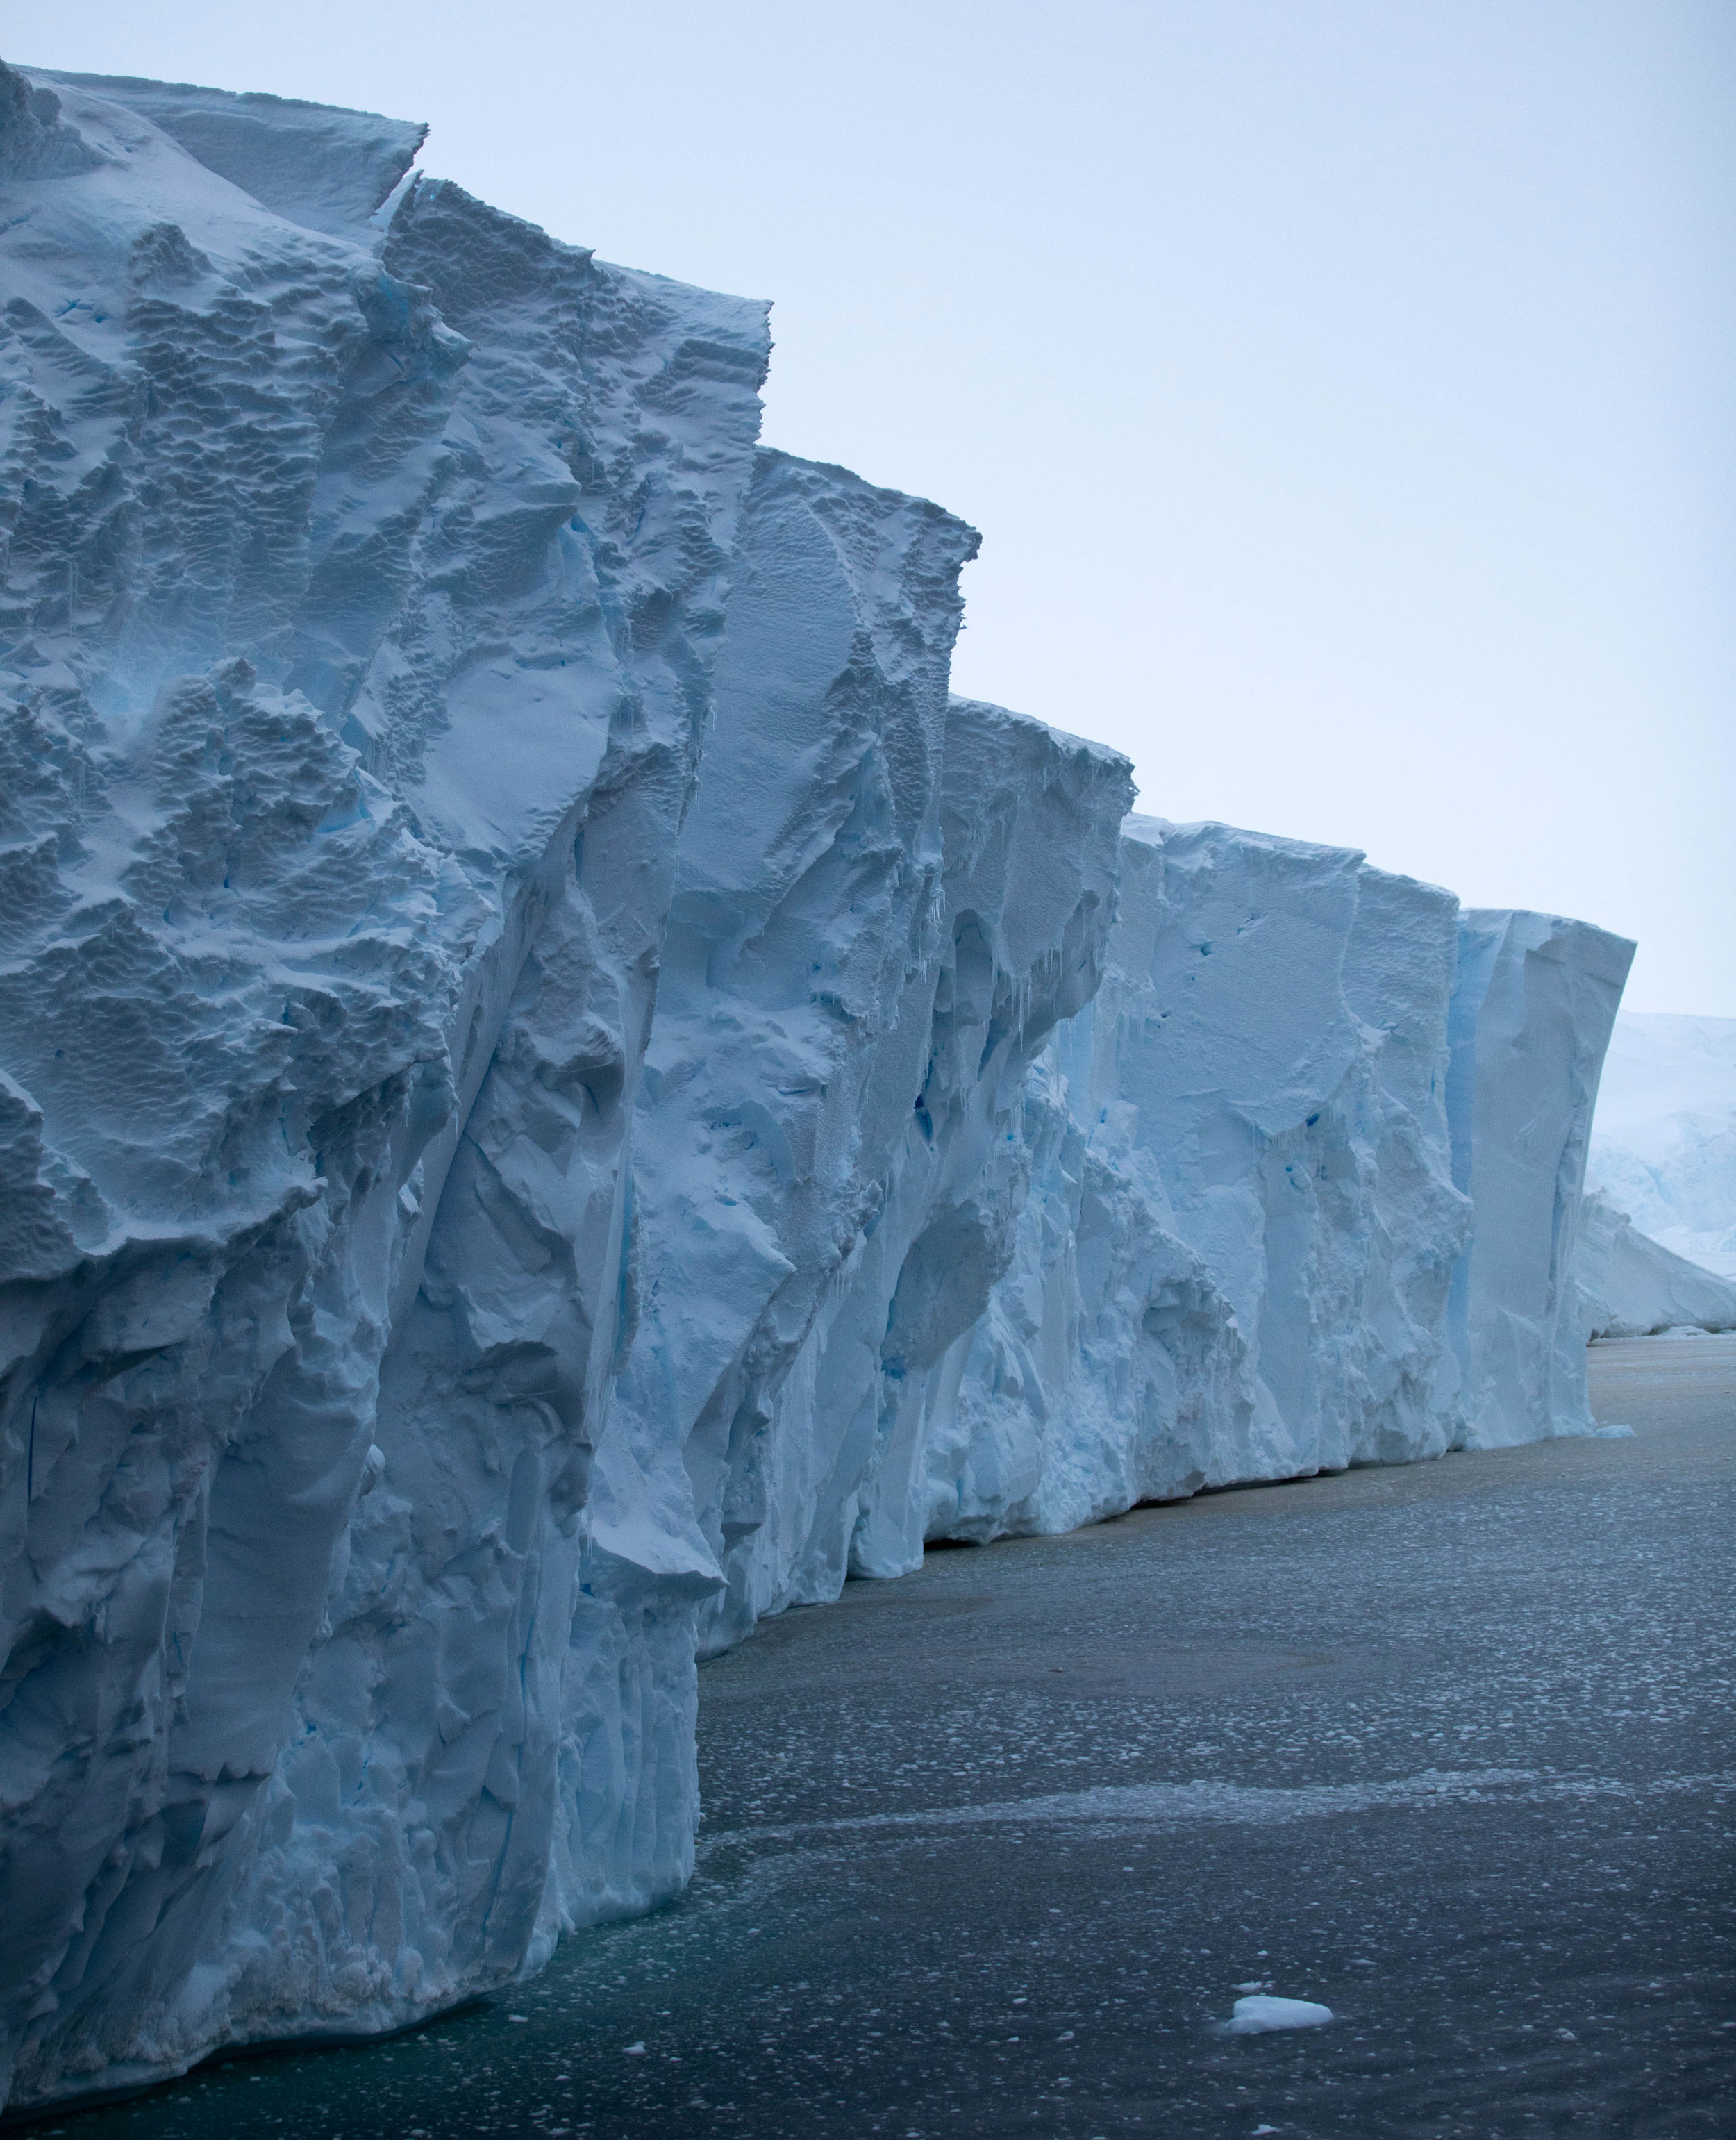 If Thwaites Glacier Collapses It Would Change Global